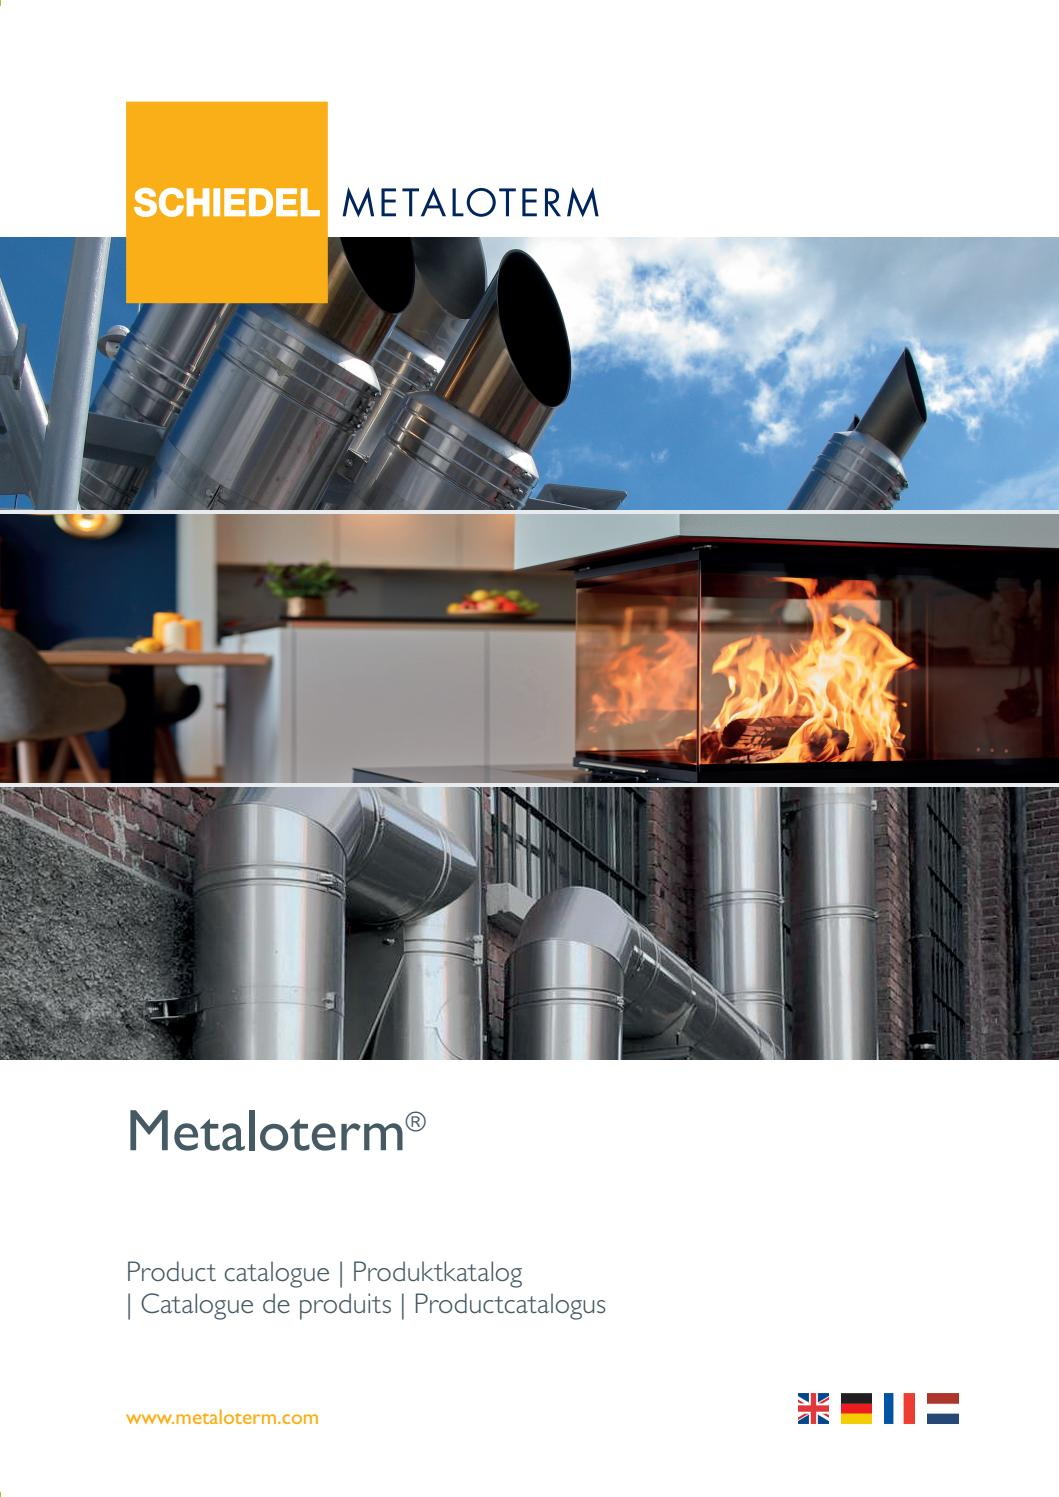 Metaloterm Product Catalogue By Lmg Strategie Creatie Issuu